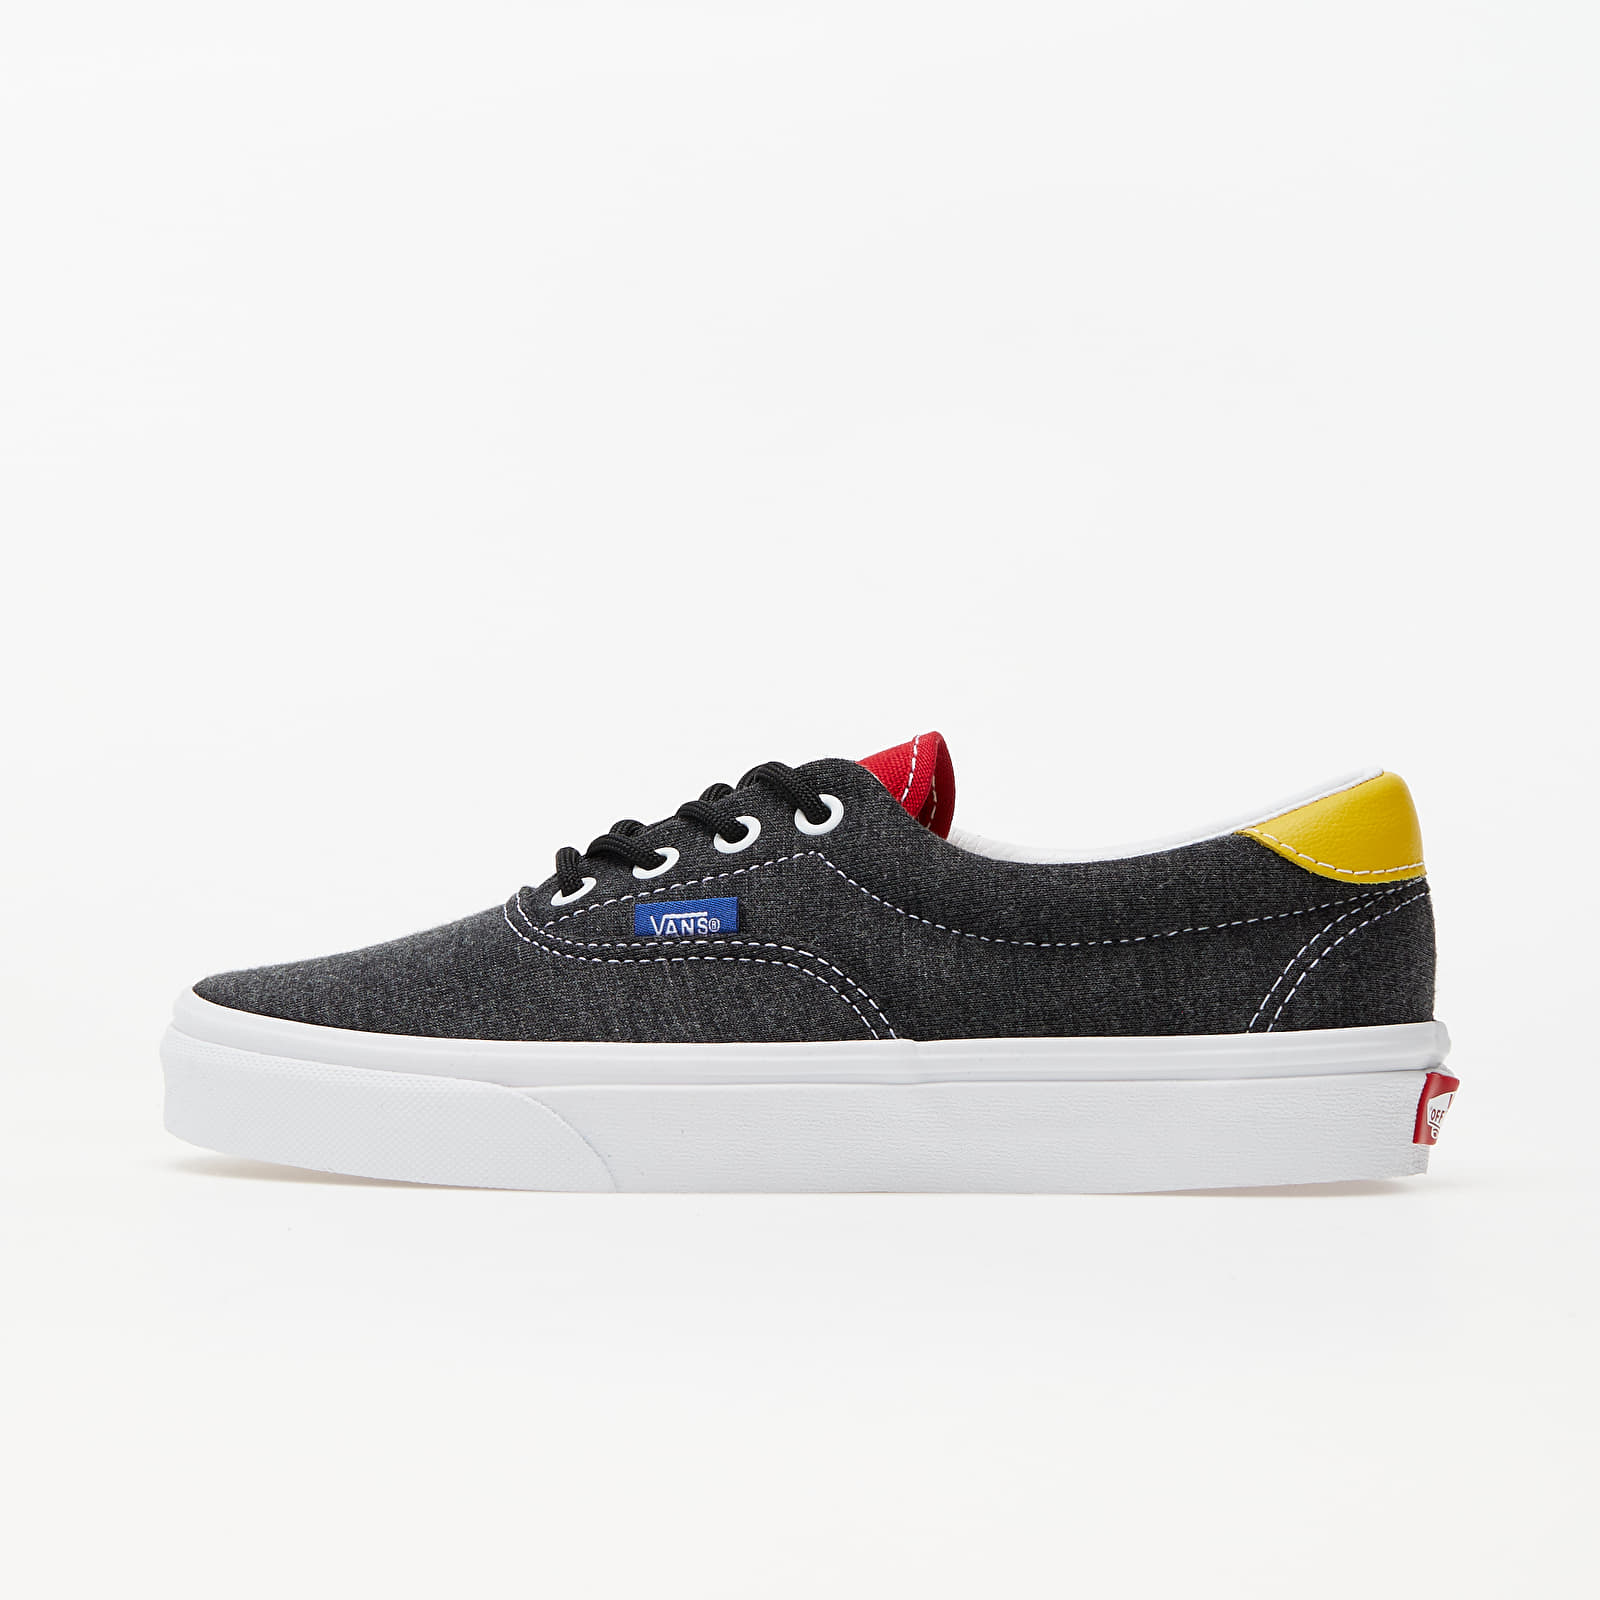 Vans Era 59 (Vans Coastal) Black/ True White EUR 37